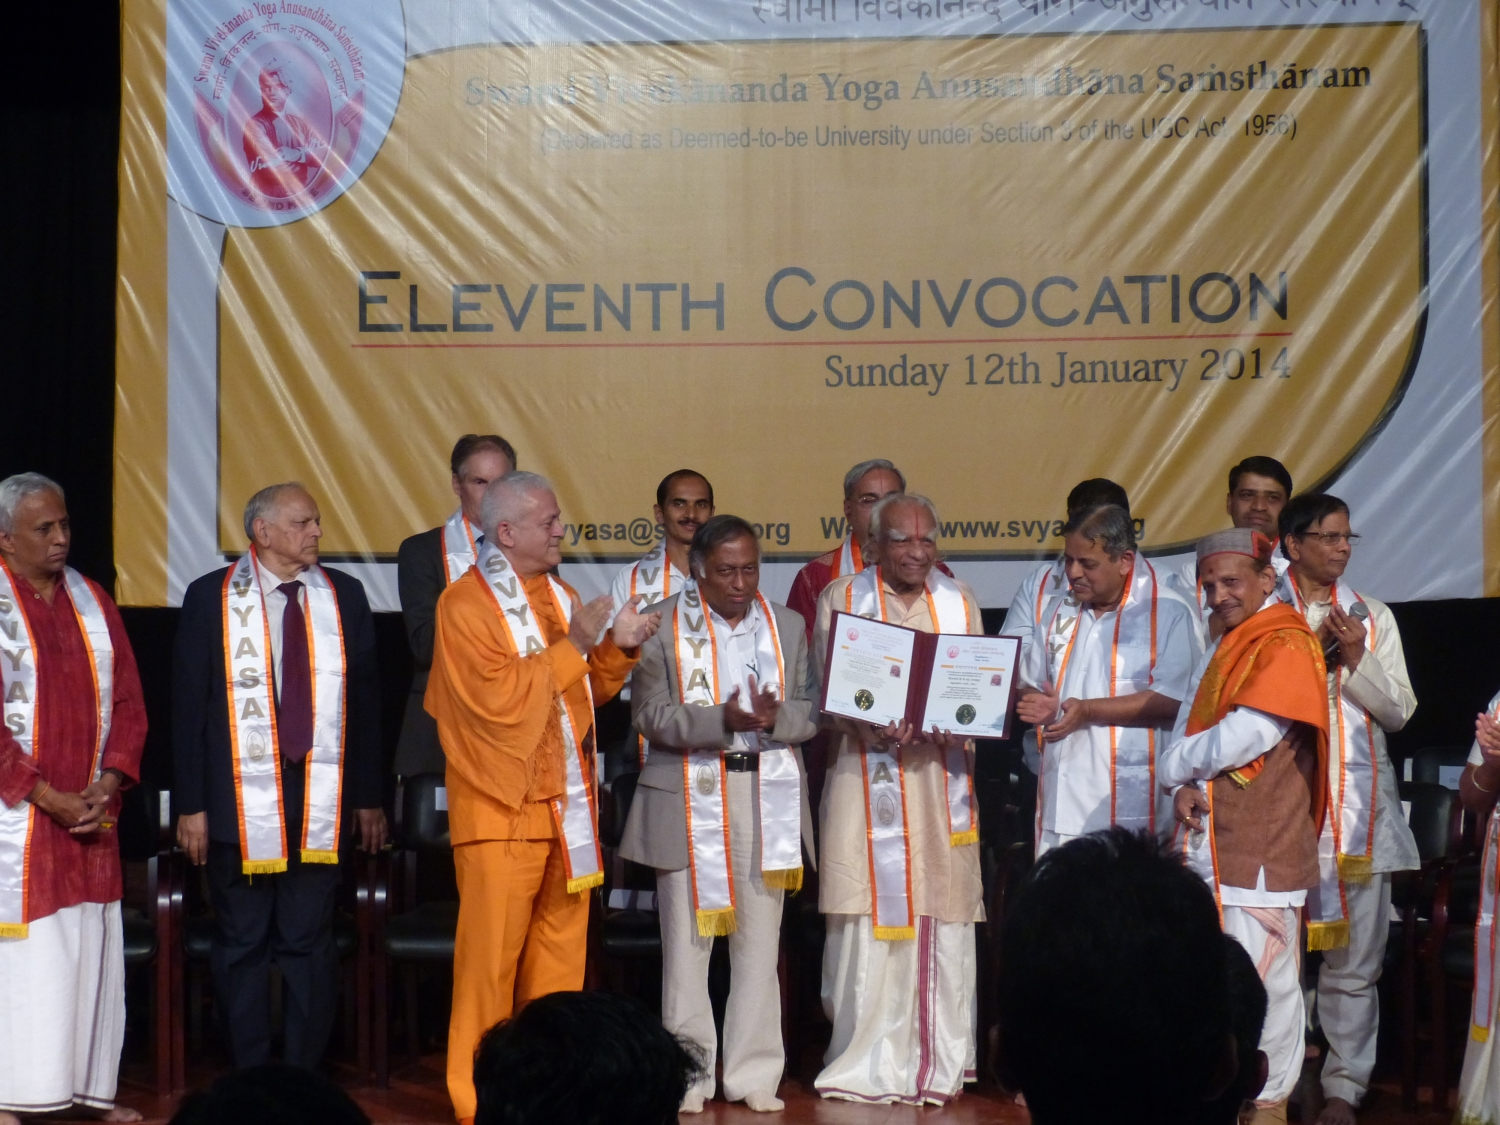 Delivery of the Honorary Doctorate (DLitte Degree) to the Yoga Guru Amrta Súryánanda Mahá Rája by the University of Bengaluru, S-Vyása - 2014, January, 12th (...)